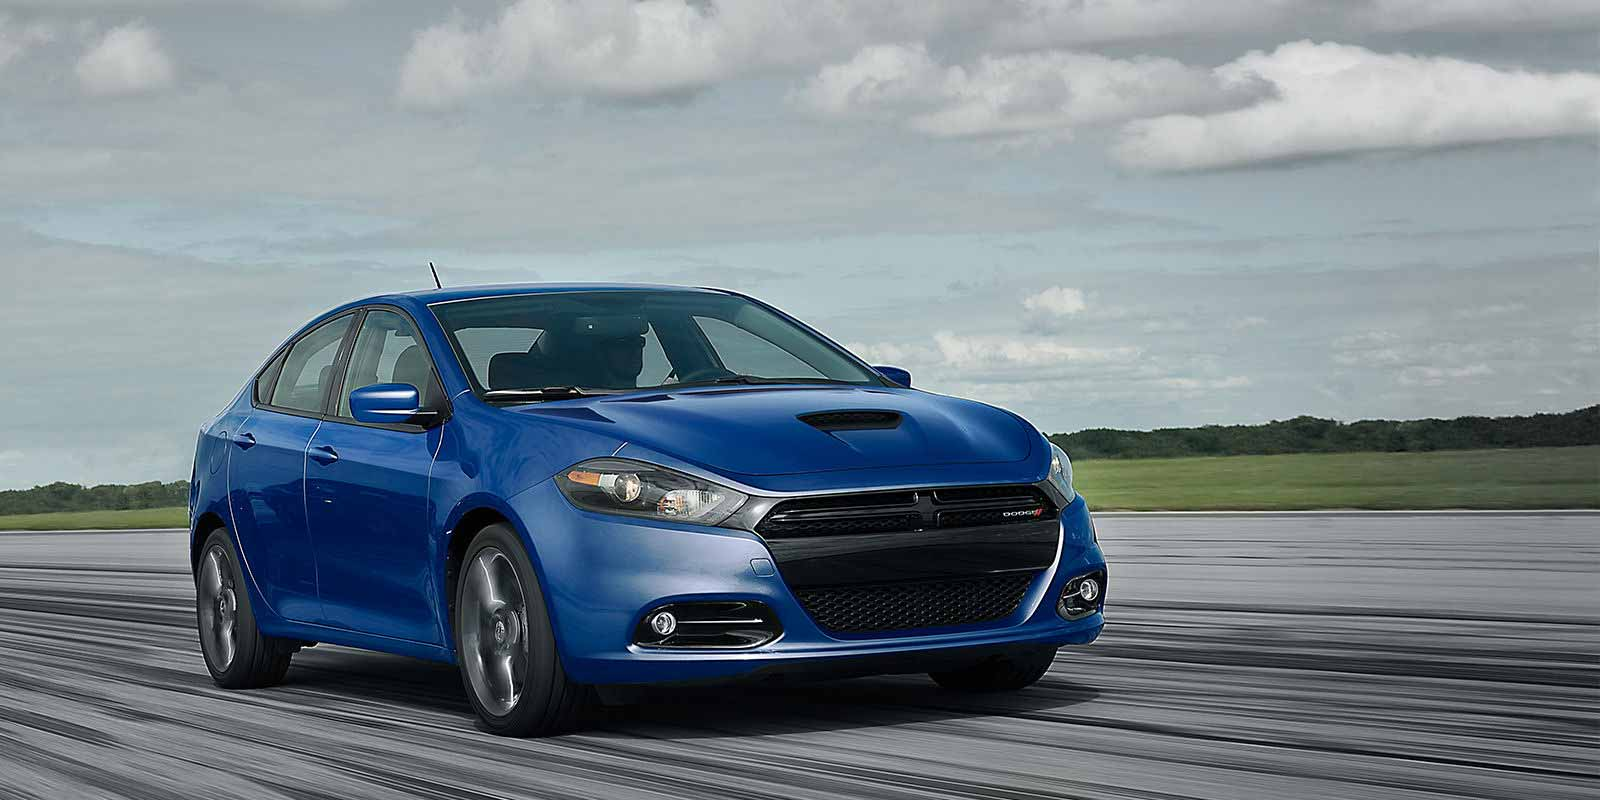 dodge dart reliability The Dodge Dart Was A Complete Failure  Shifting Lanes